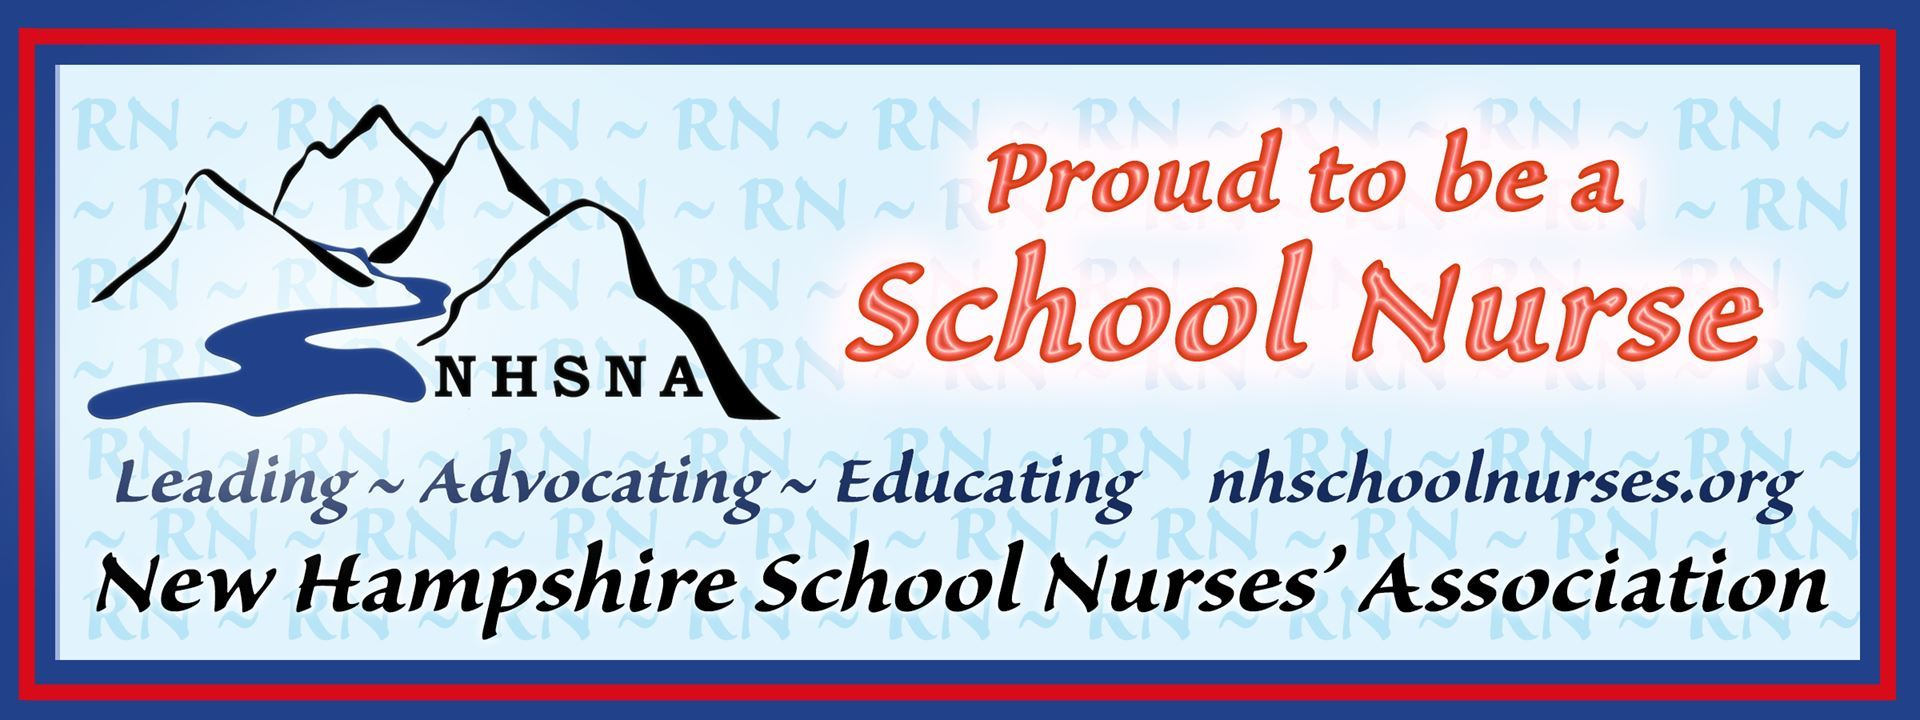 New Hampshire School Nurses' Association - Job Postings